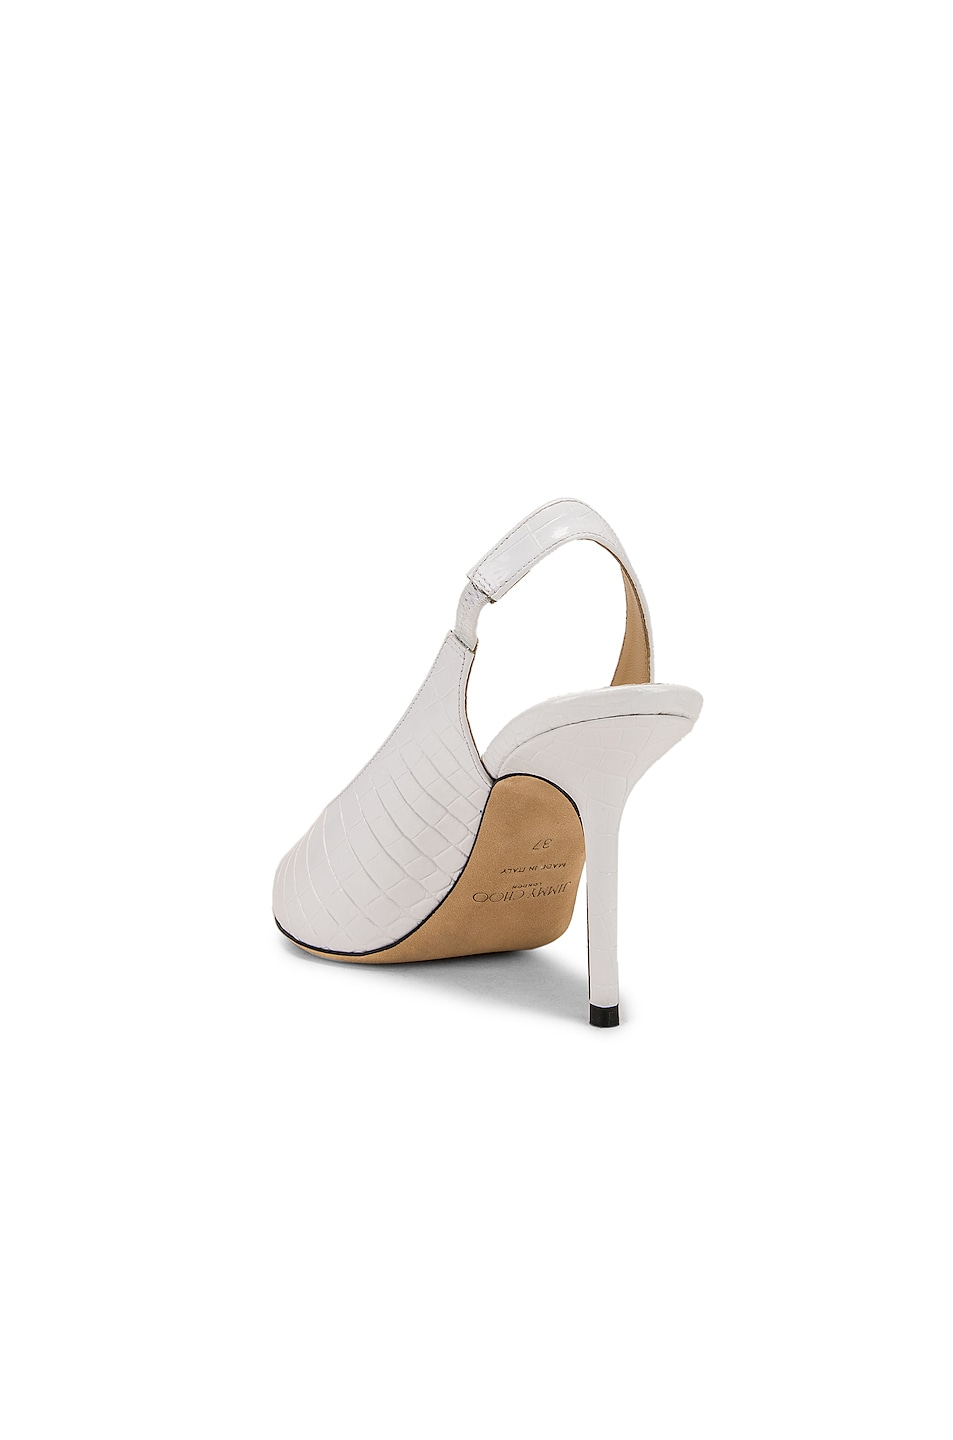 Image 3 of Jimmy Choo Ivy 85 Heel in Latte